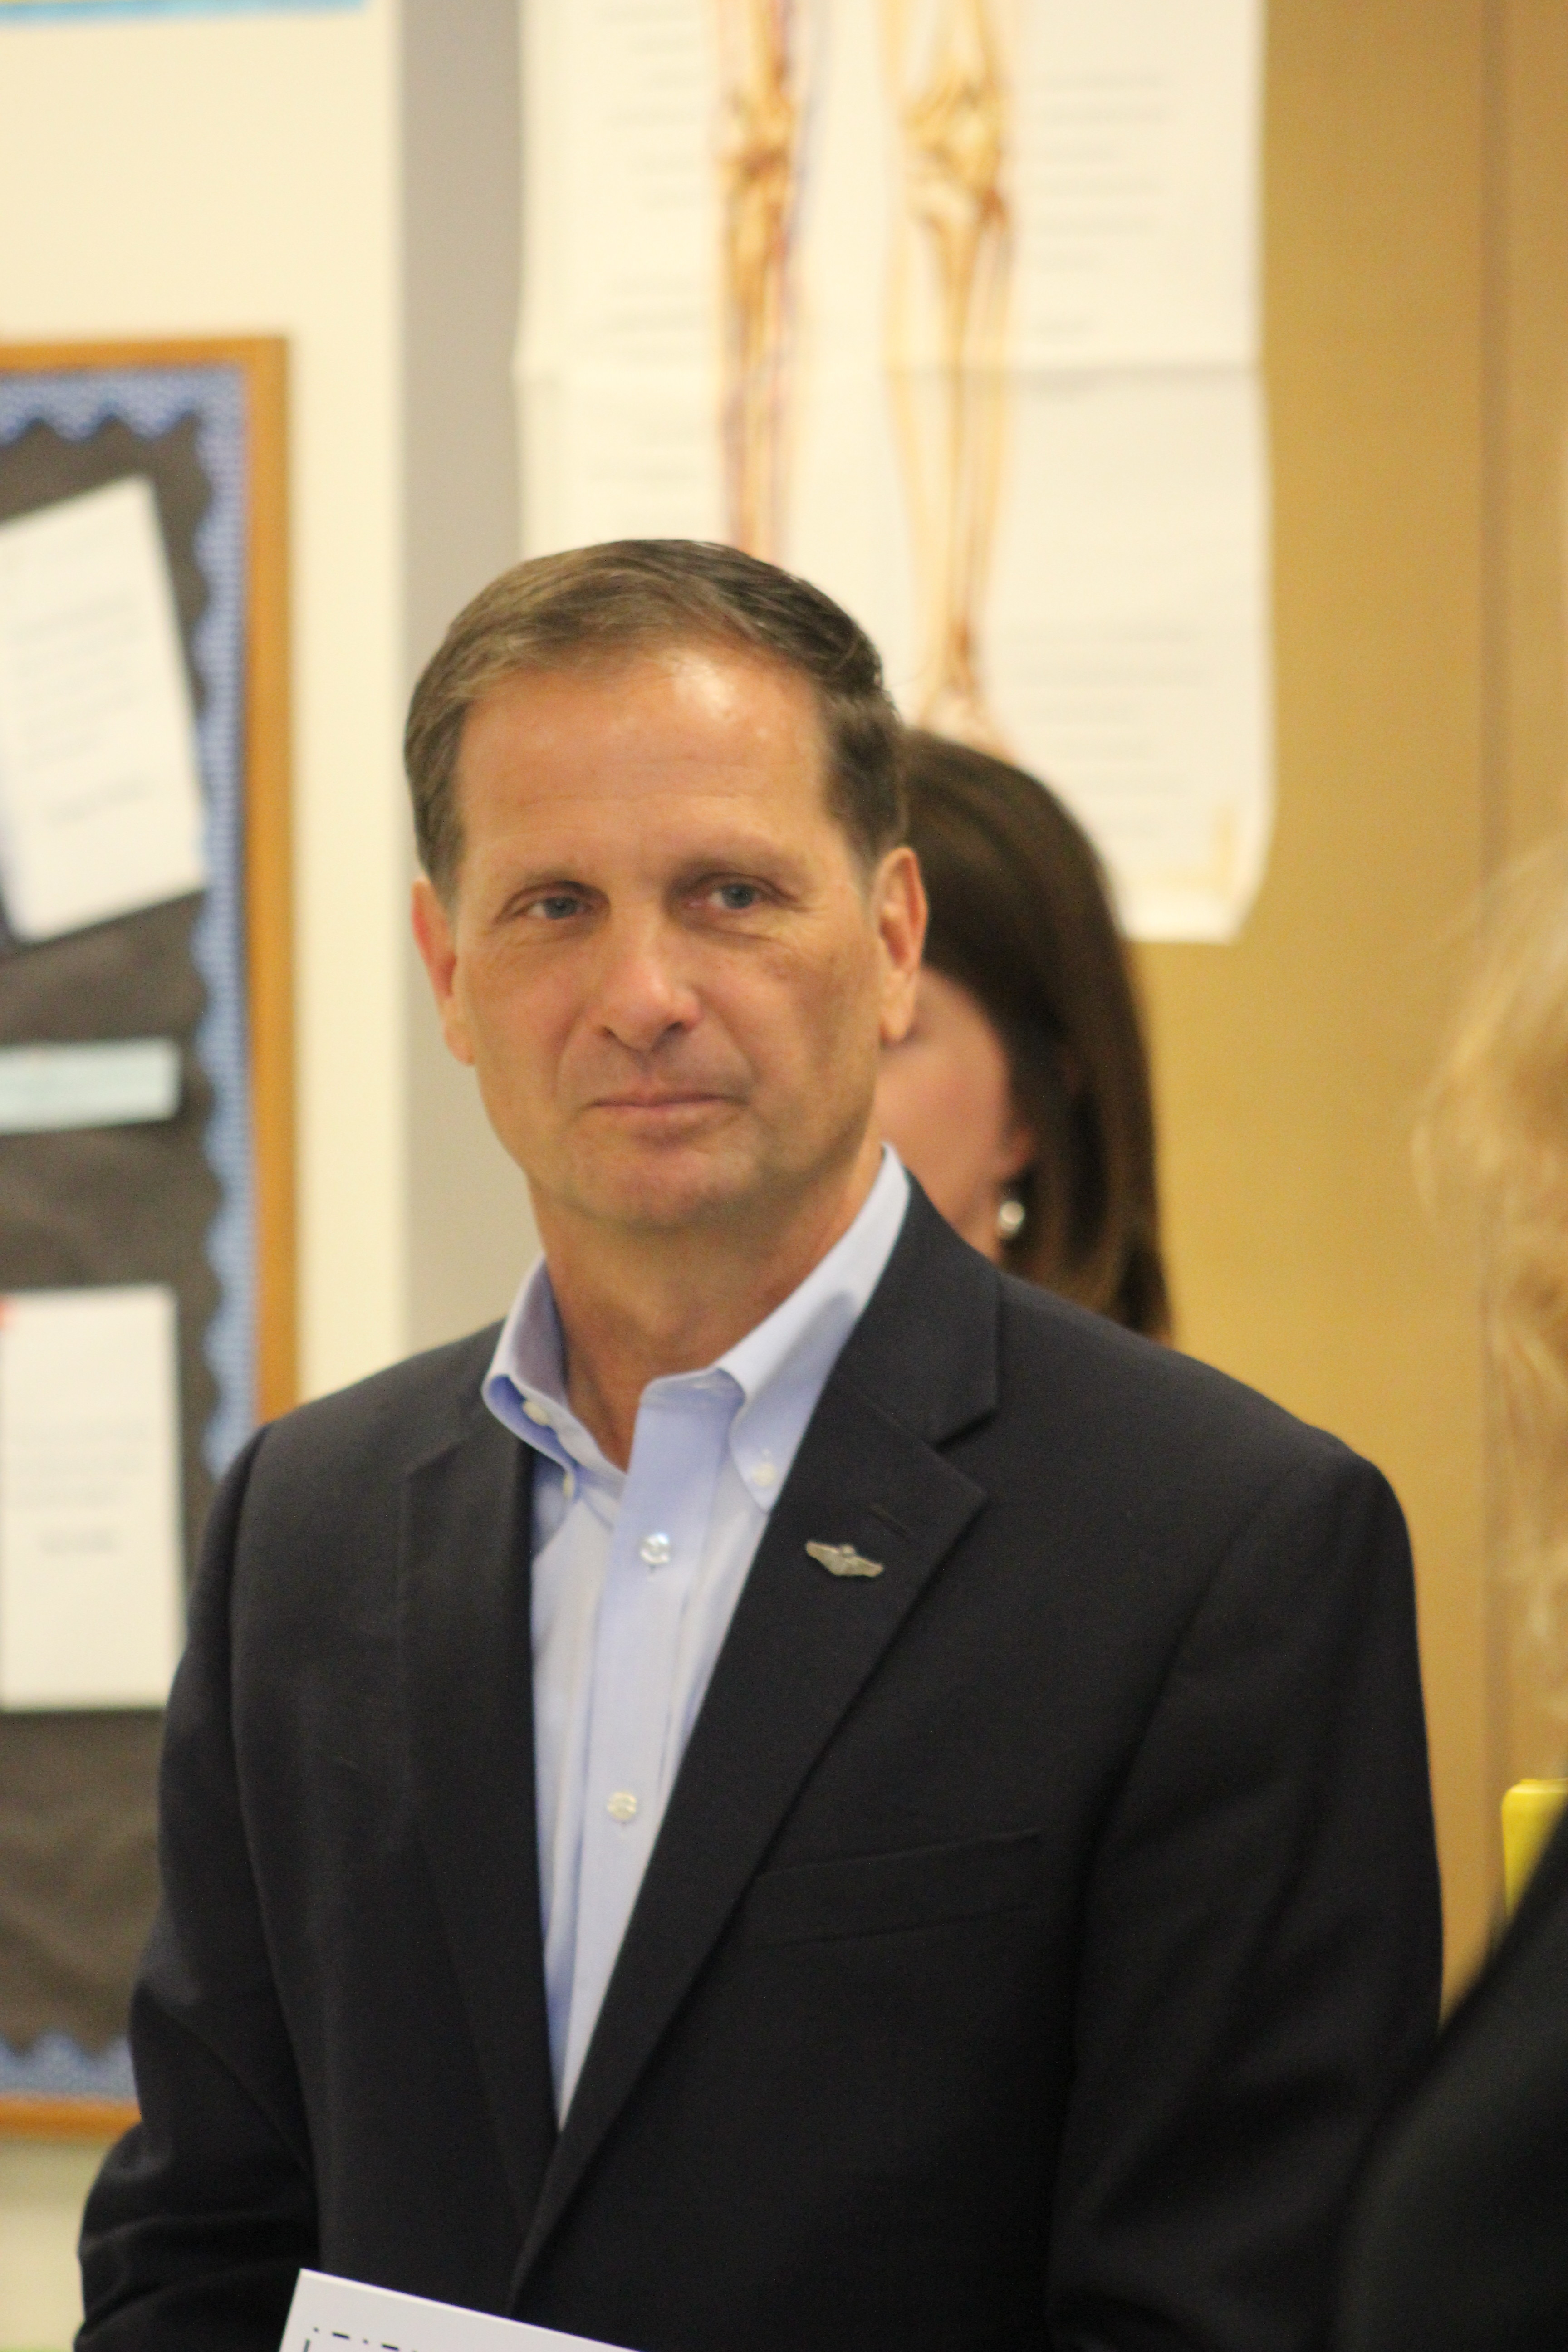 Congressman Chris Stewart took a tour of George Washington Academy, which was recently named as one of the top performing charter schools by the National Alliance of Public Charter Schools, St. George, Utah, May 6, 2016 | Photo by Don Gilman, St. George News